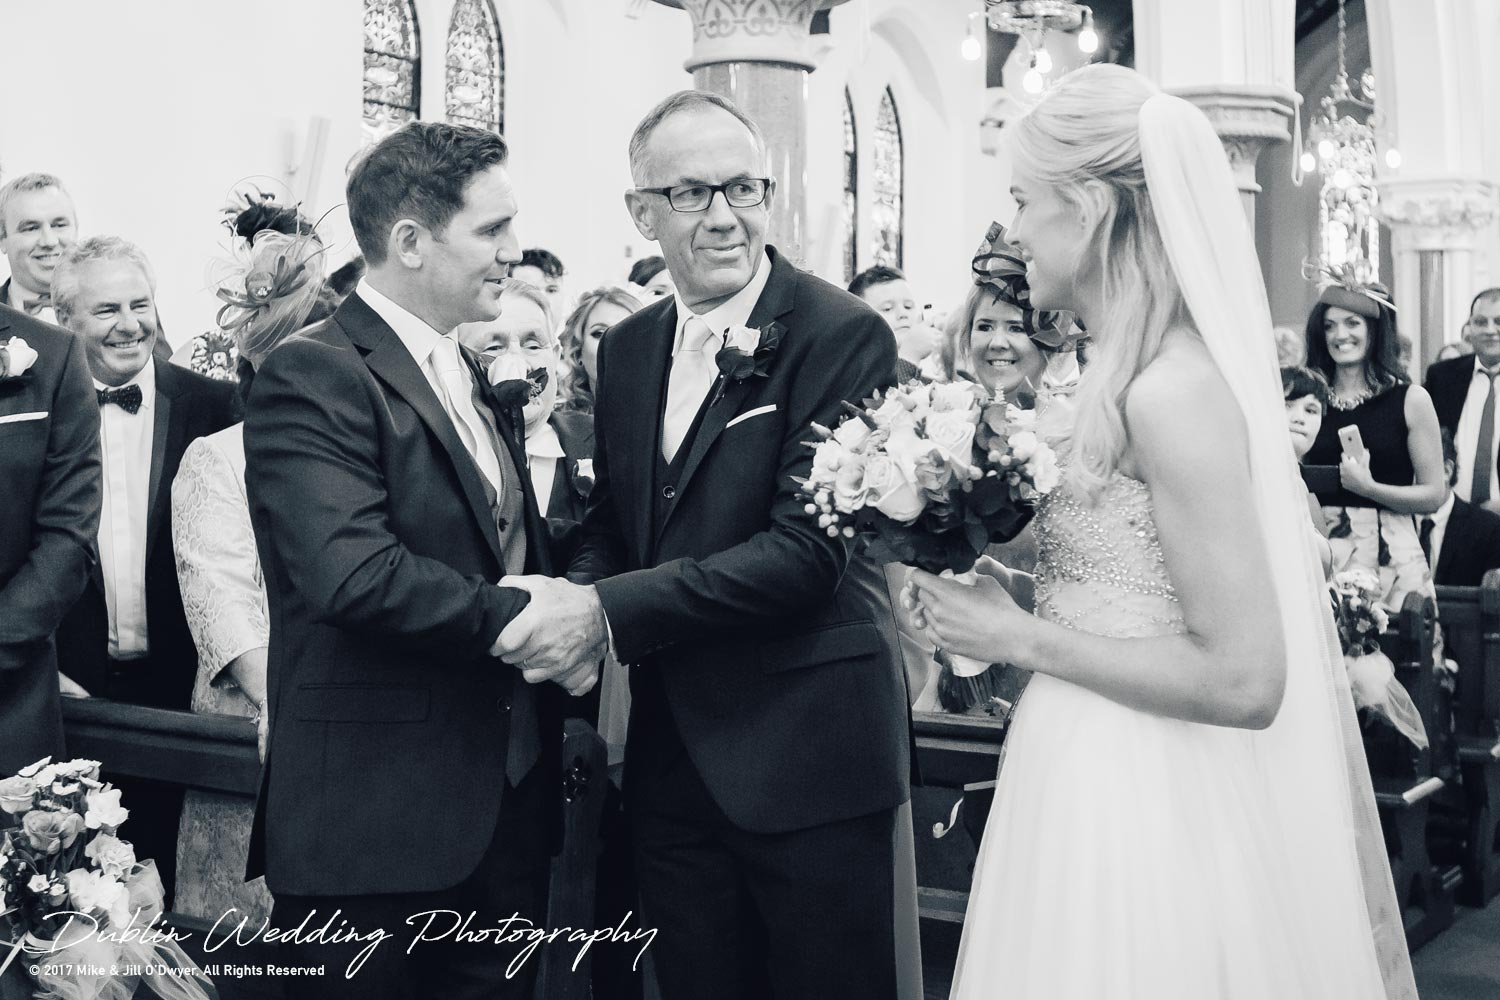 K Club, Kildare, Wedding Photographer, Dublin, Father of the bride and Groom shake hands while the Bride watches